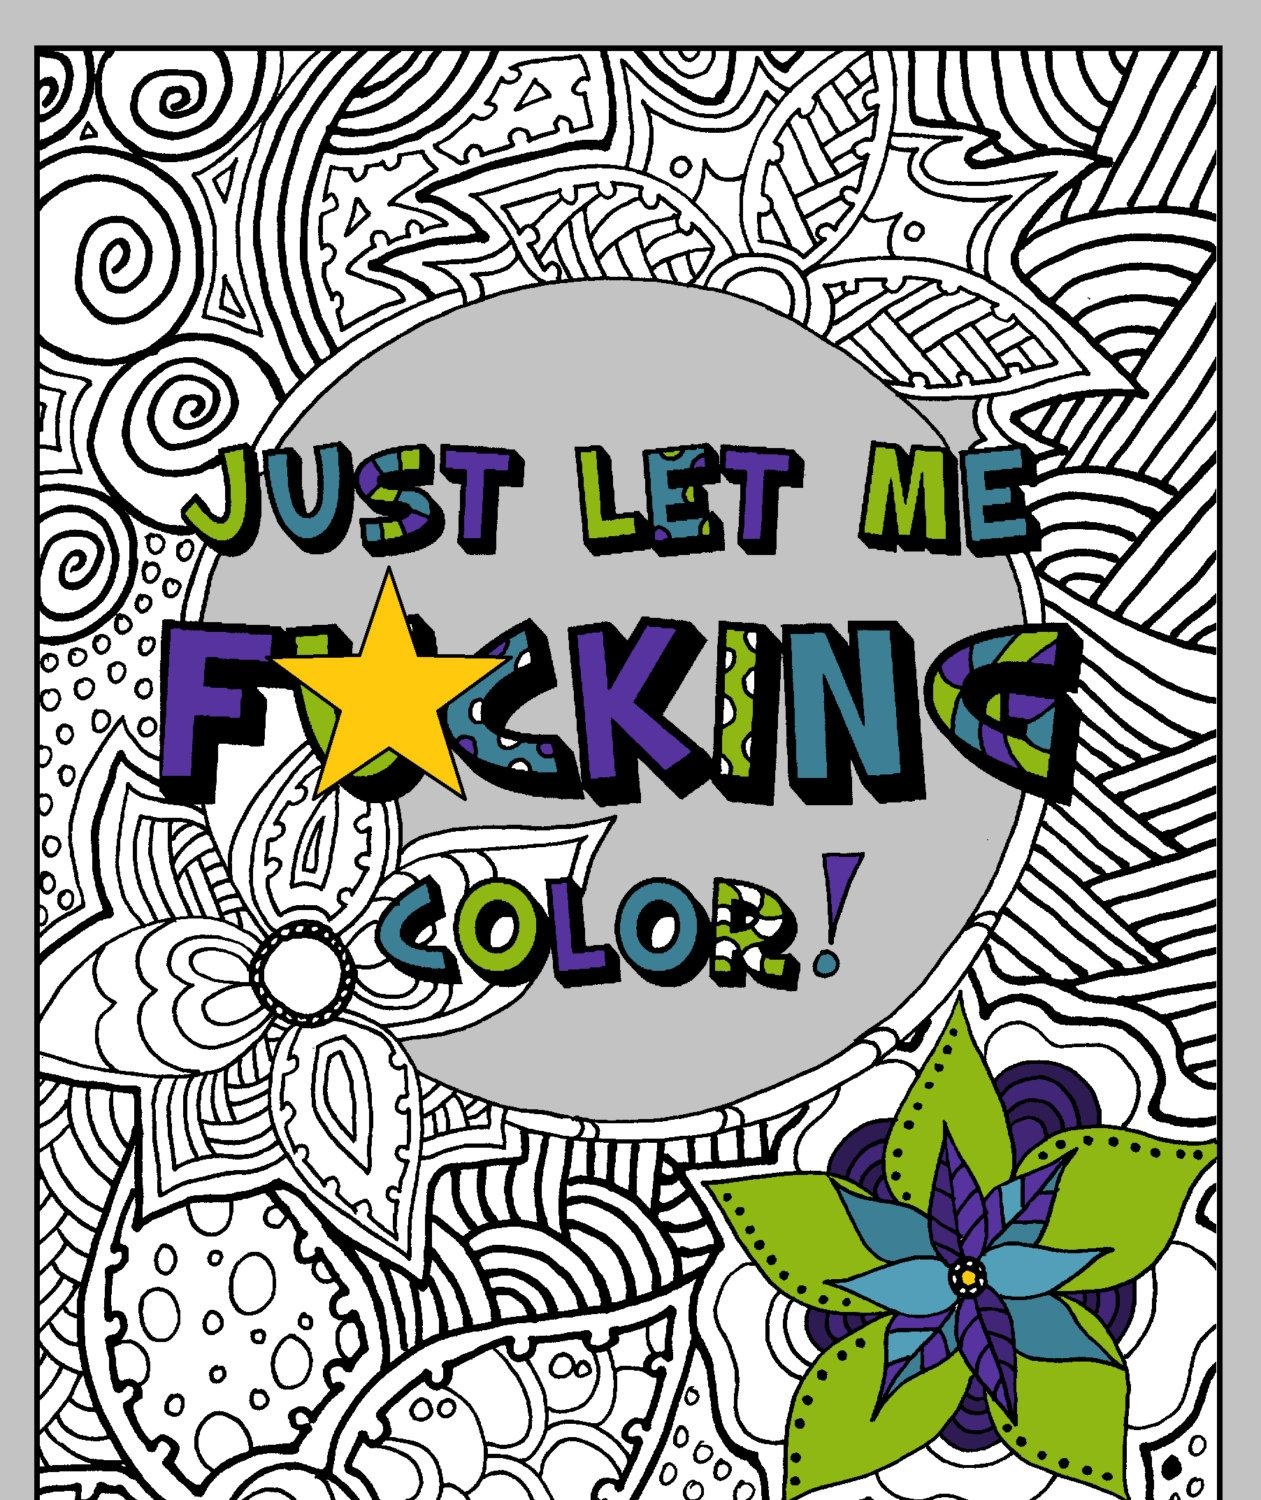 Swear word coloring pages etsy - Swear Words Adult Coloring Book Hate Your Job Printable Instant Download Sweary Coloring